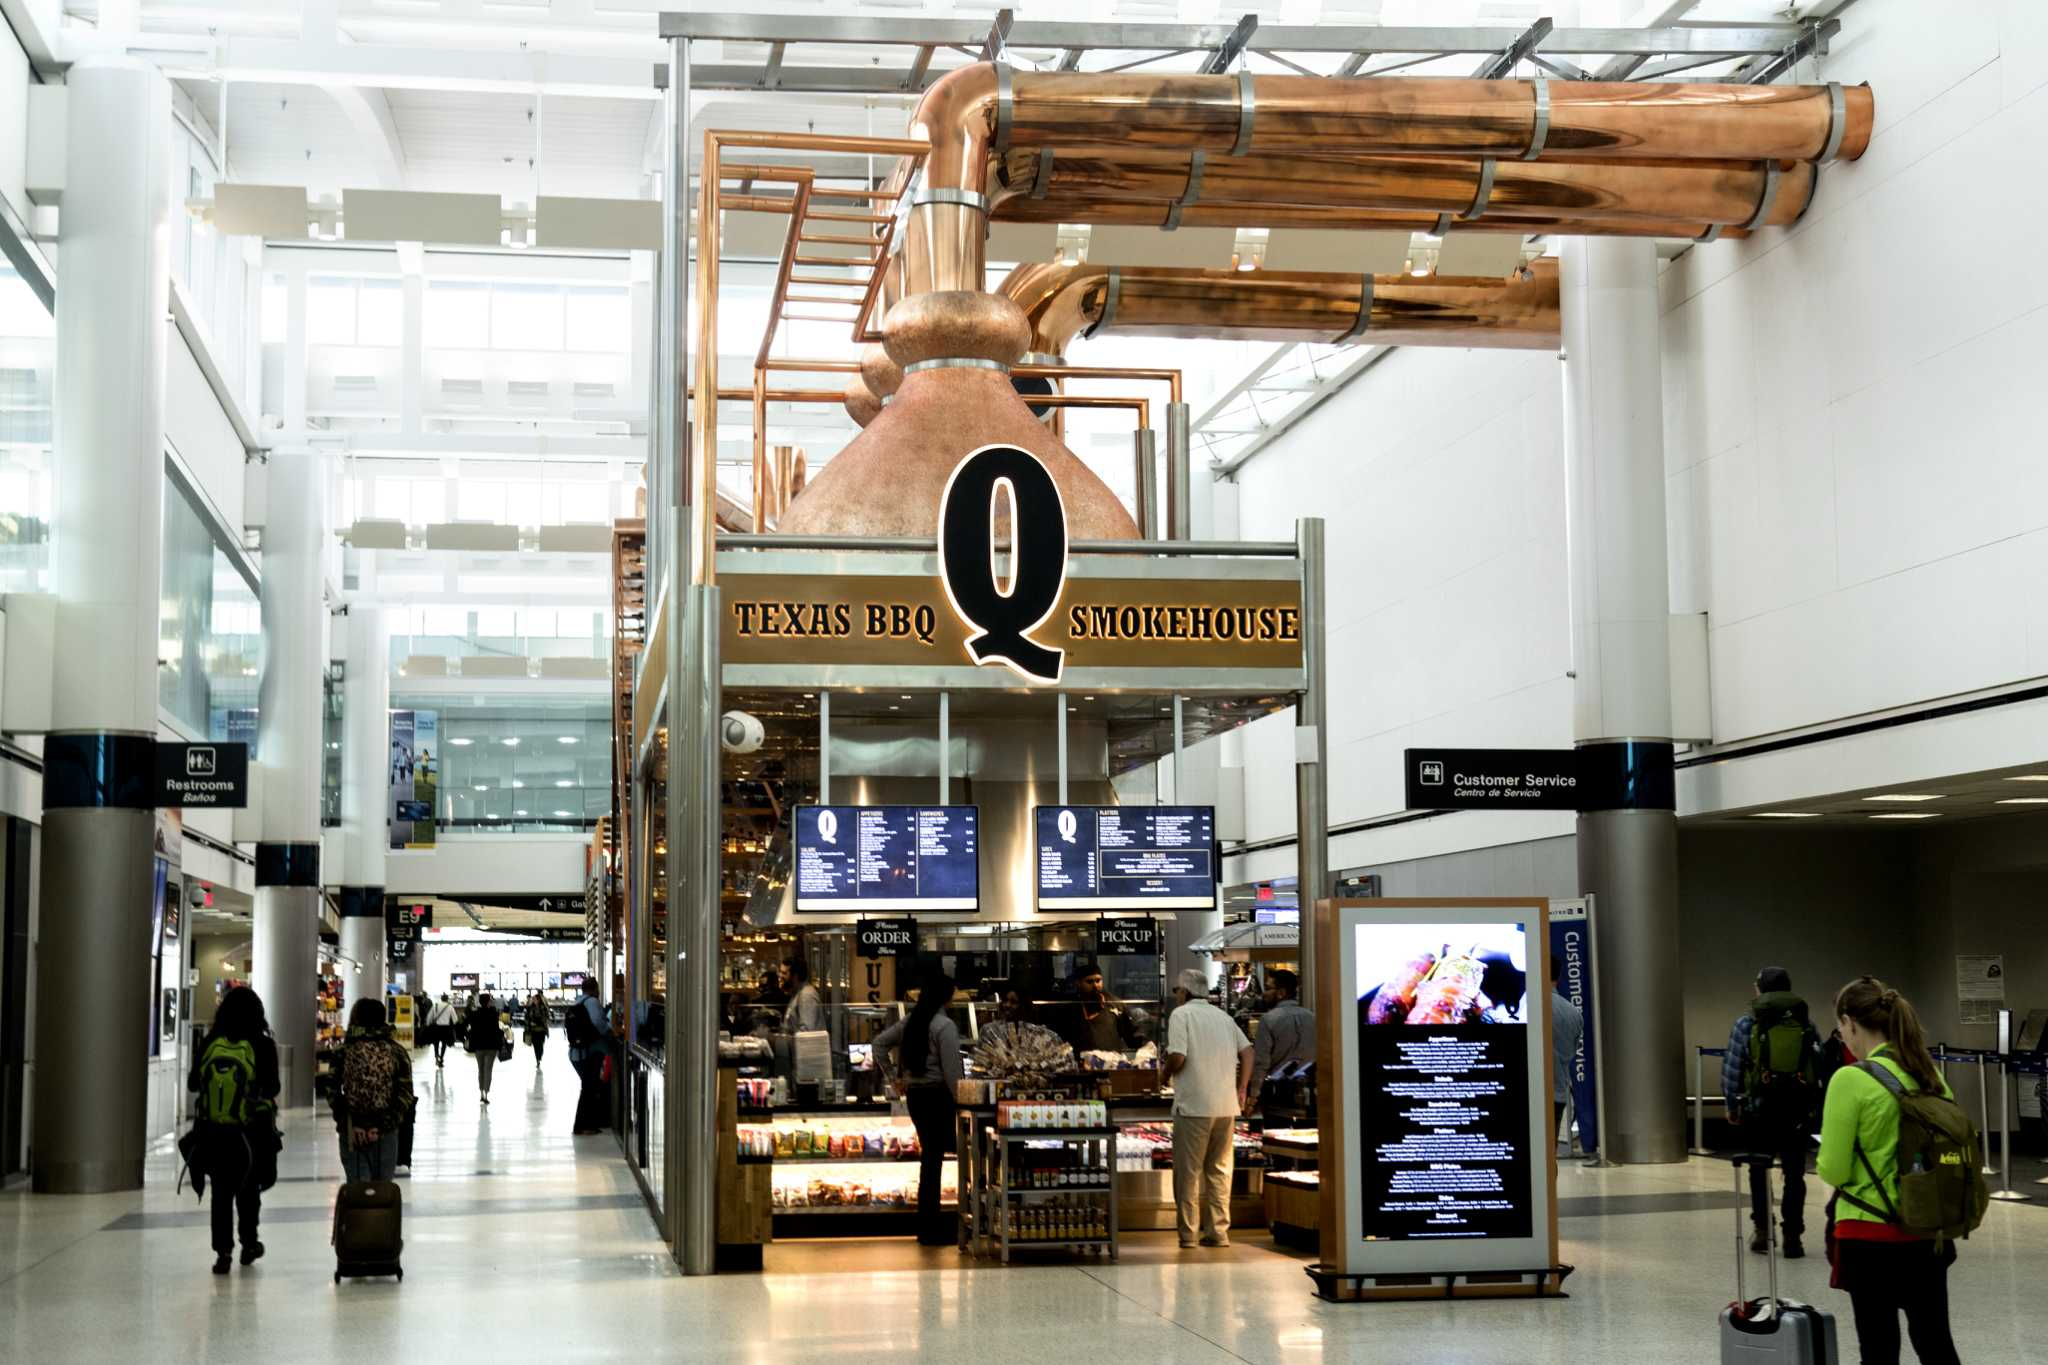 With Q Houston Airport S Restaurant Options Are Smokin Hot